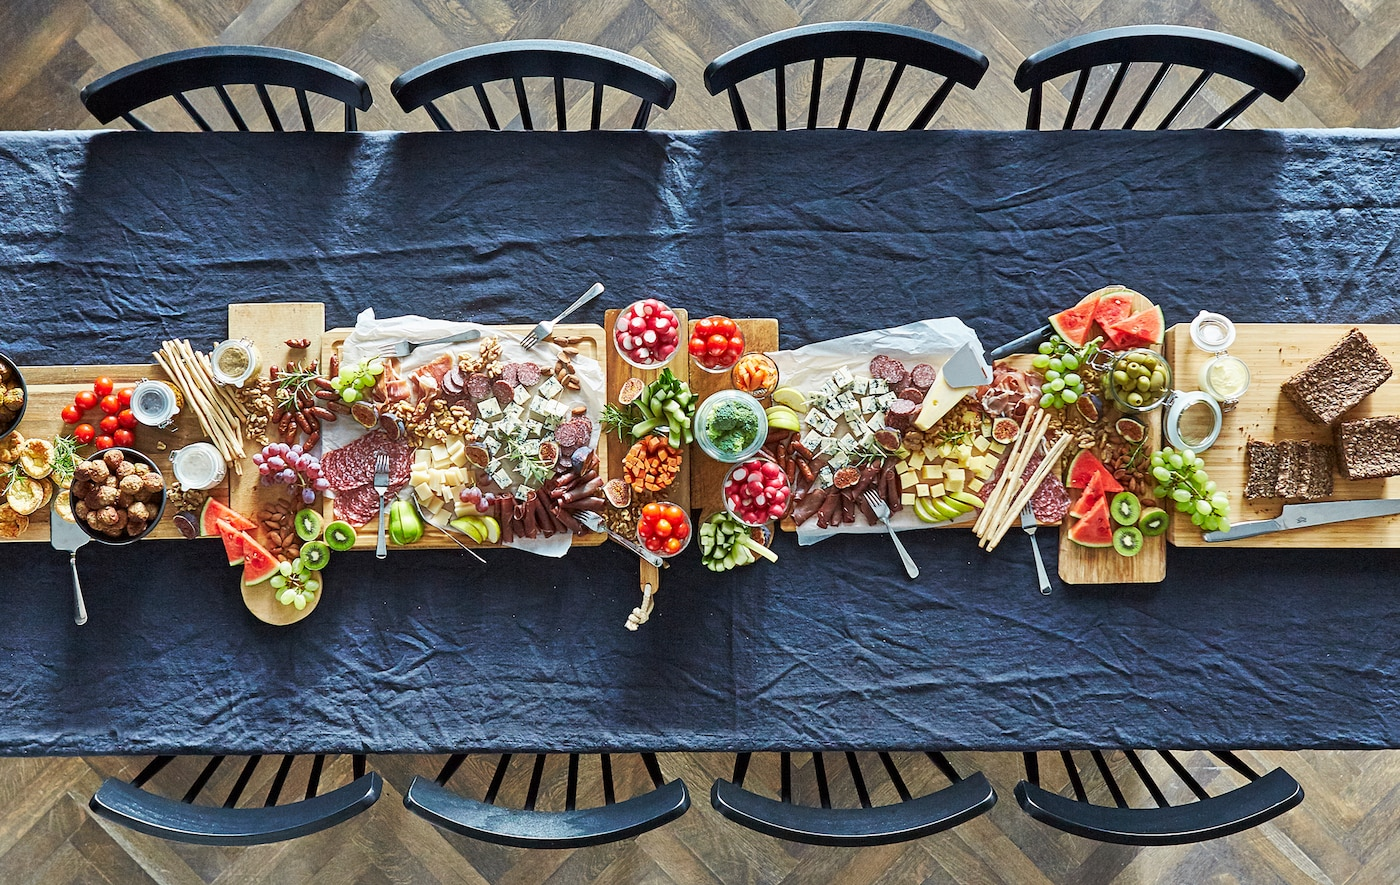 Consider replacing the elaborate, exhausting dinner party with a spread of already-prepared foods. It's visually beautiful and relieves a ton of pressure.